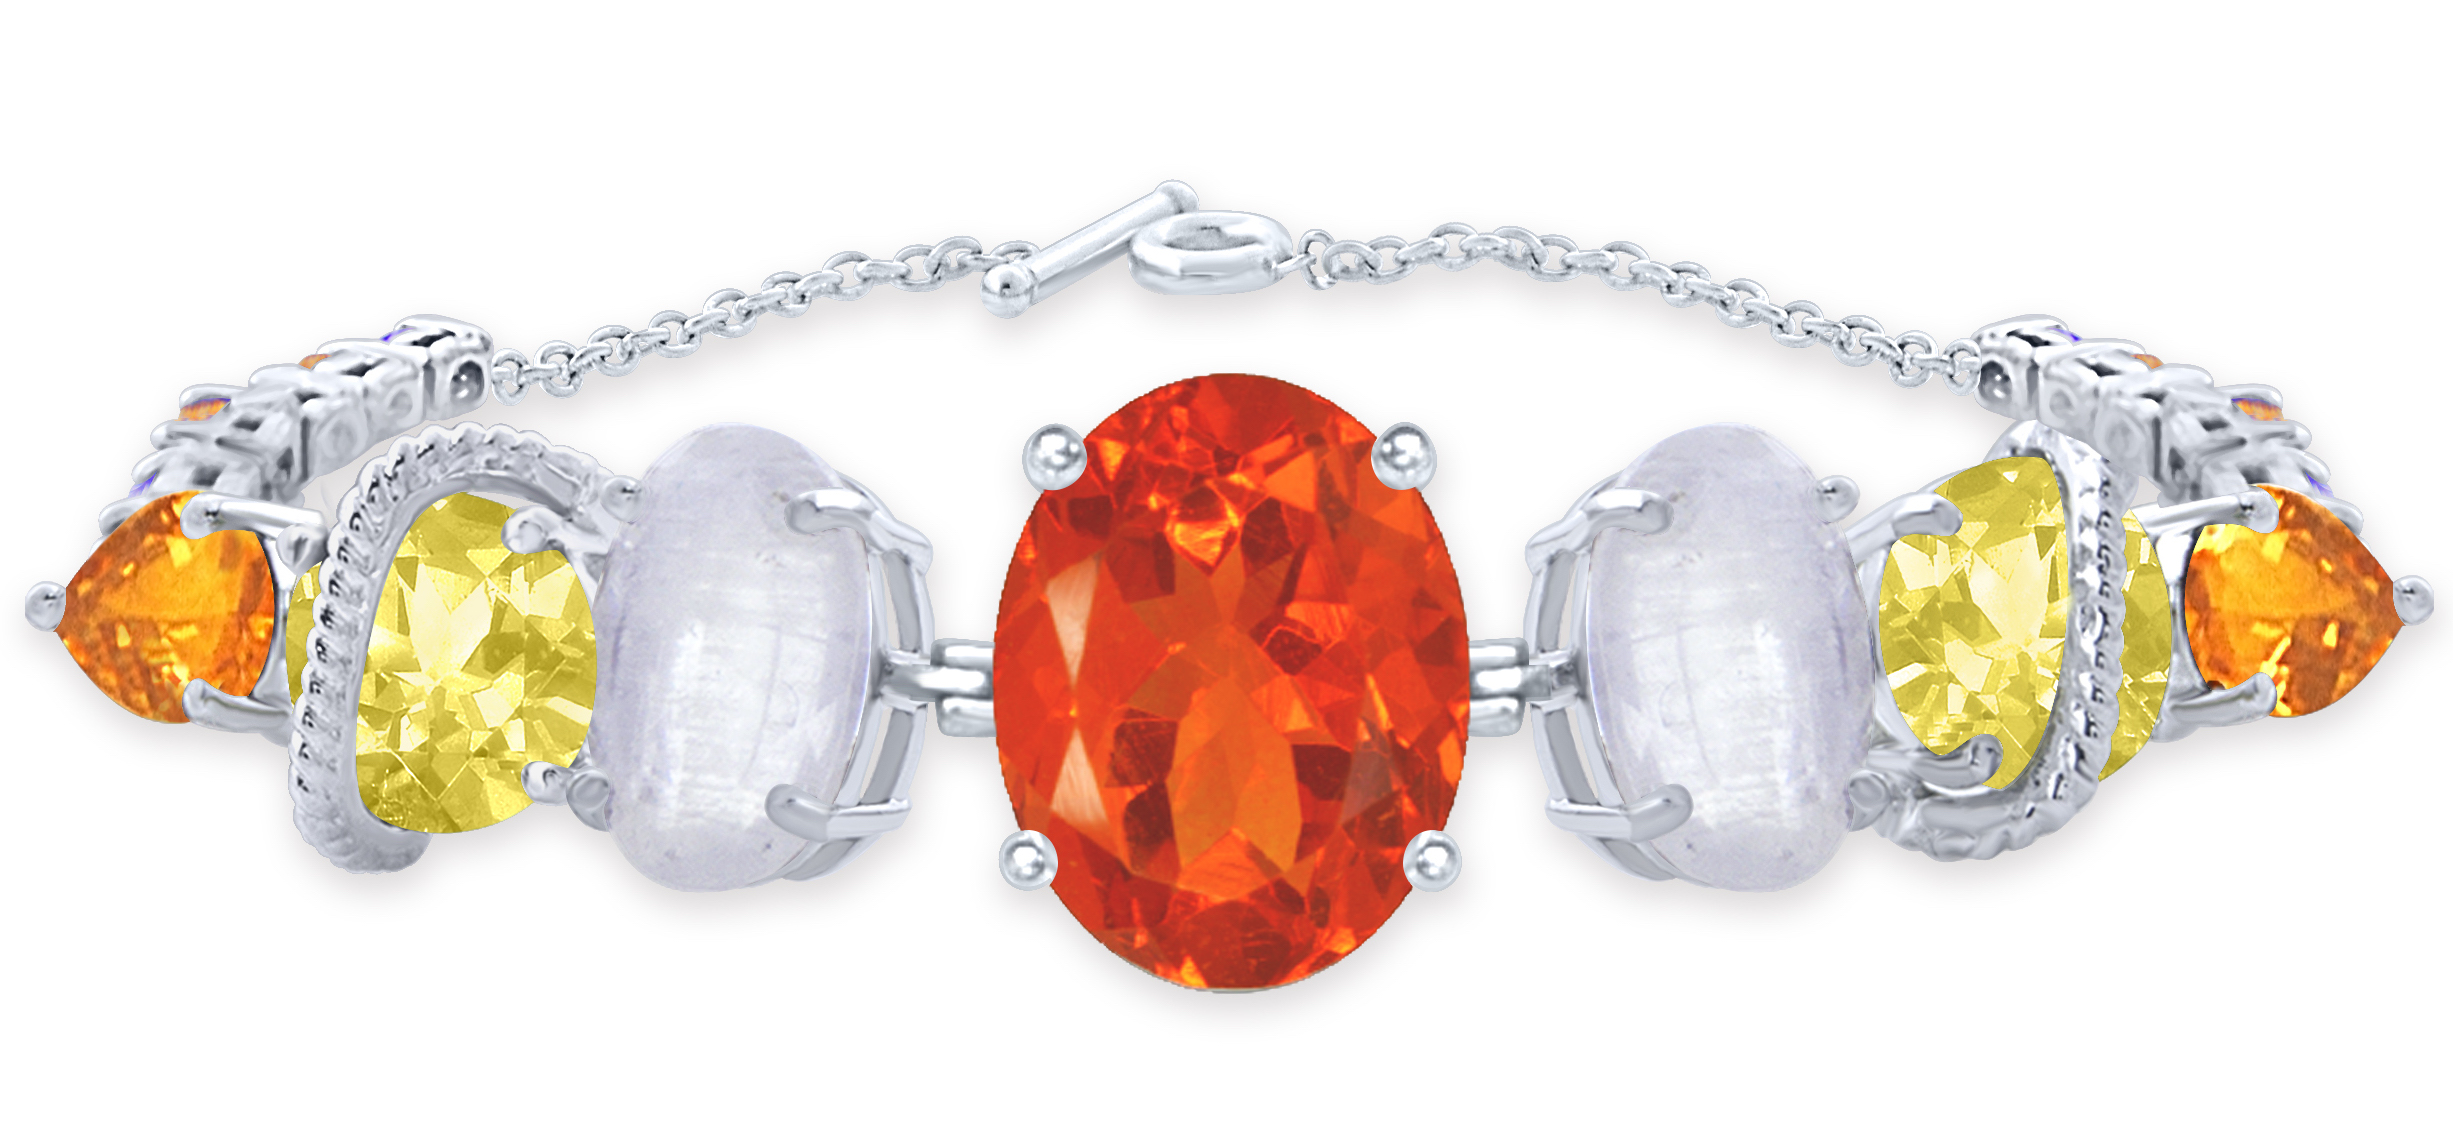 Arya Esha one-of-a-kind bracelet with fire opal and moonstone #BRITTSPICK | JCK On Your Market